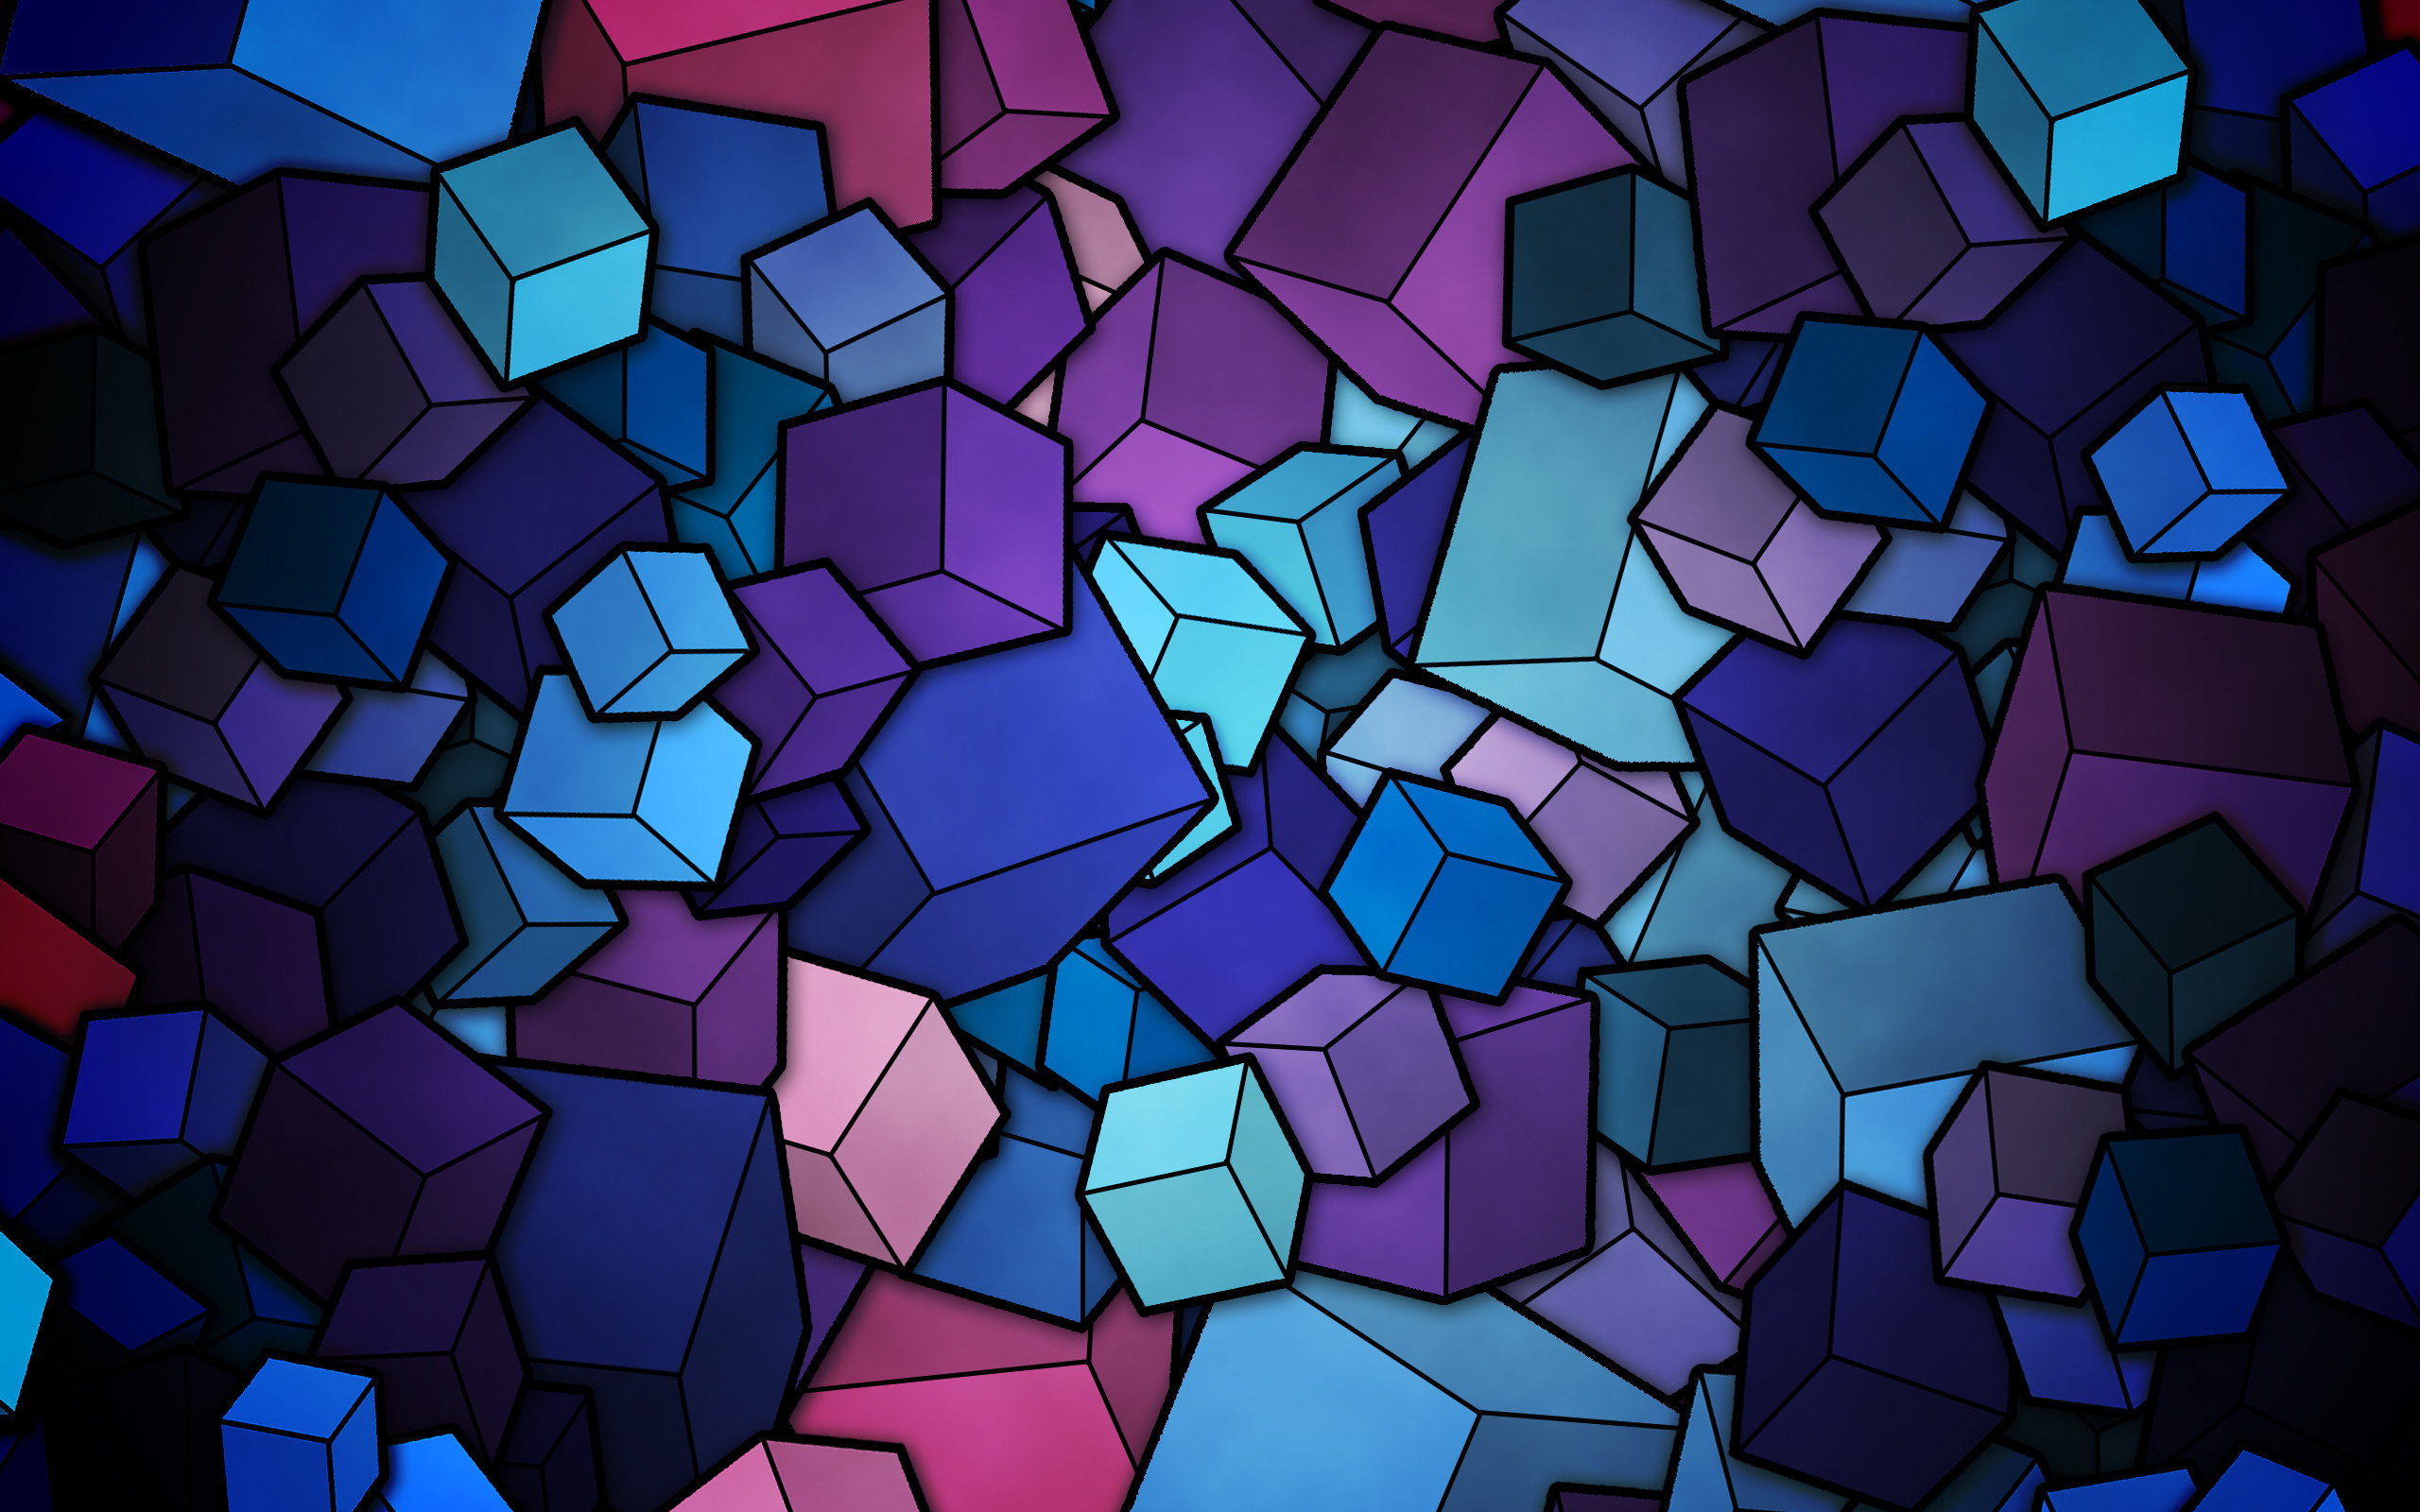 41306 download wallpaper Background screensavers and pictures for free